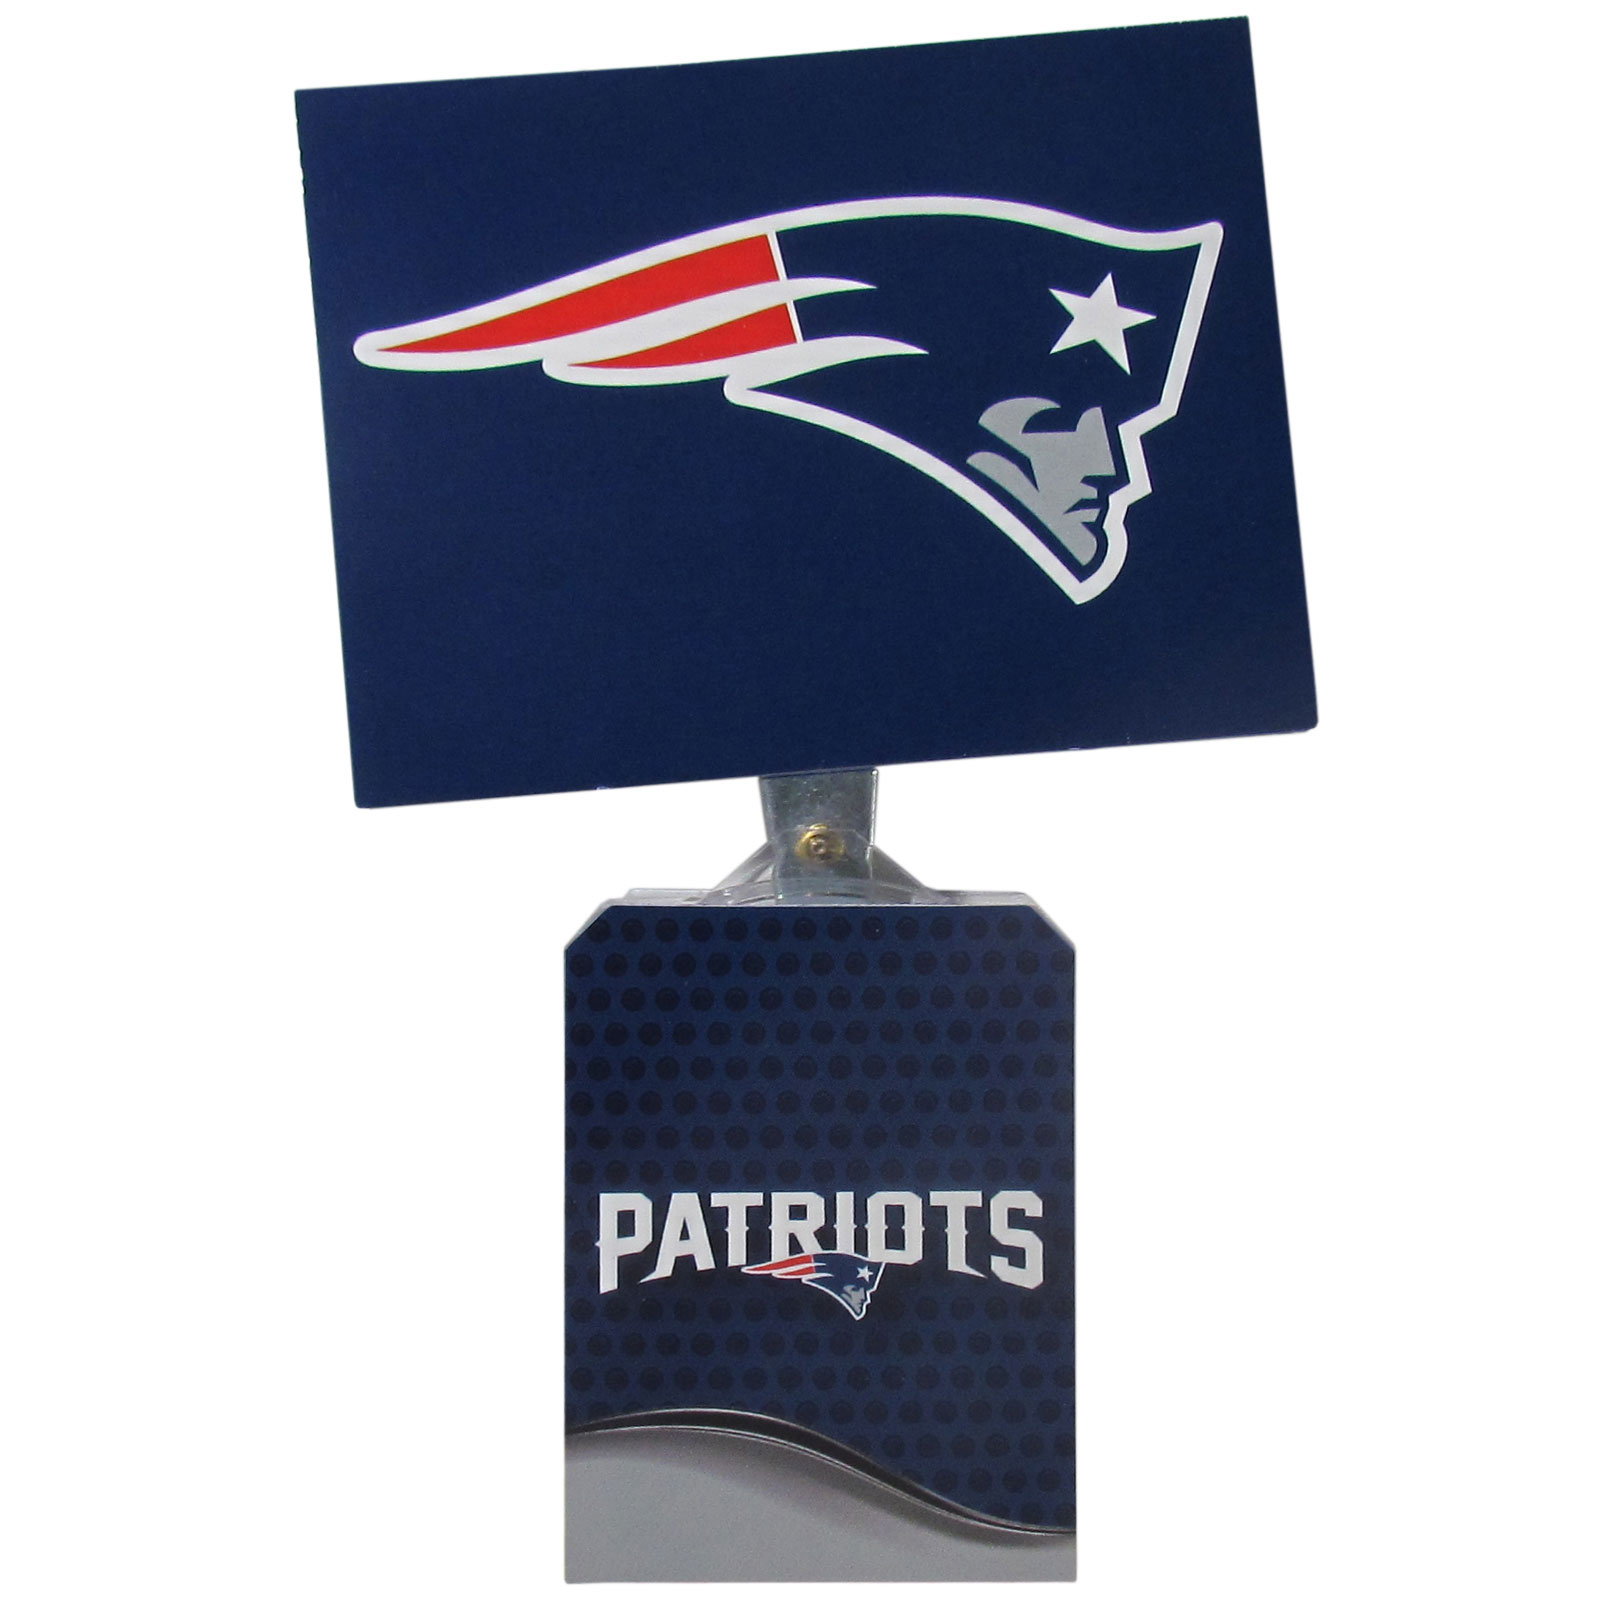 New England Patriots Solar Flags - Get pumped up on the way to game with Siskiyou's Chicago Bears New England Patriots Solar Flag that mounts to your dashboard or window. The in-motion solar flag also doubles as decoration for your tailgate or homegate! The base of the flag is 3 inches tall and the flag is 4 inches making the entire in-motion solar flag stand at 7 inches tall. Keep your spirit moving with your favorite team's Solar Flag.